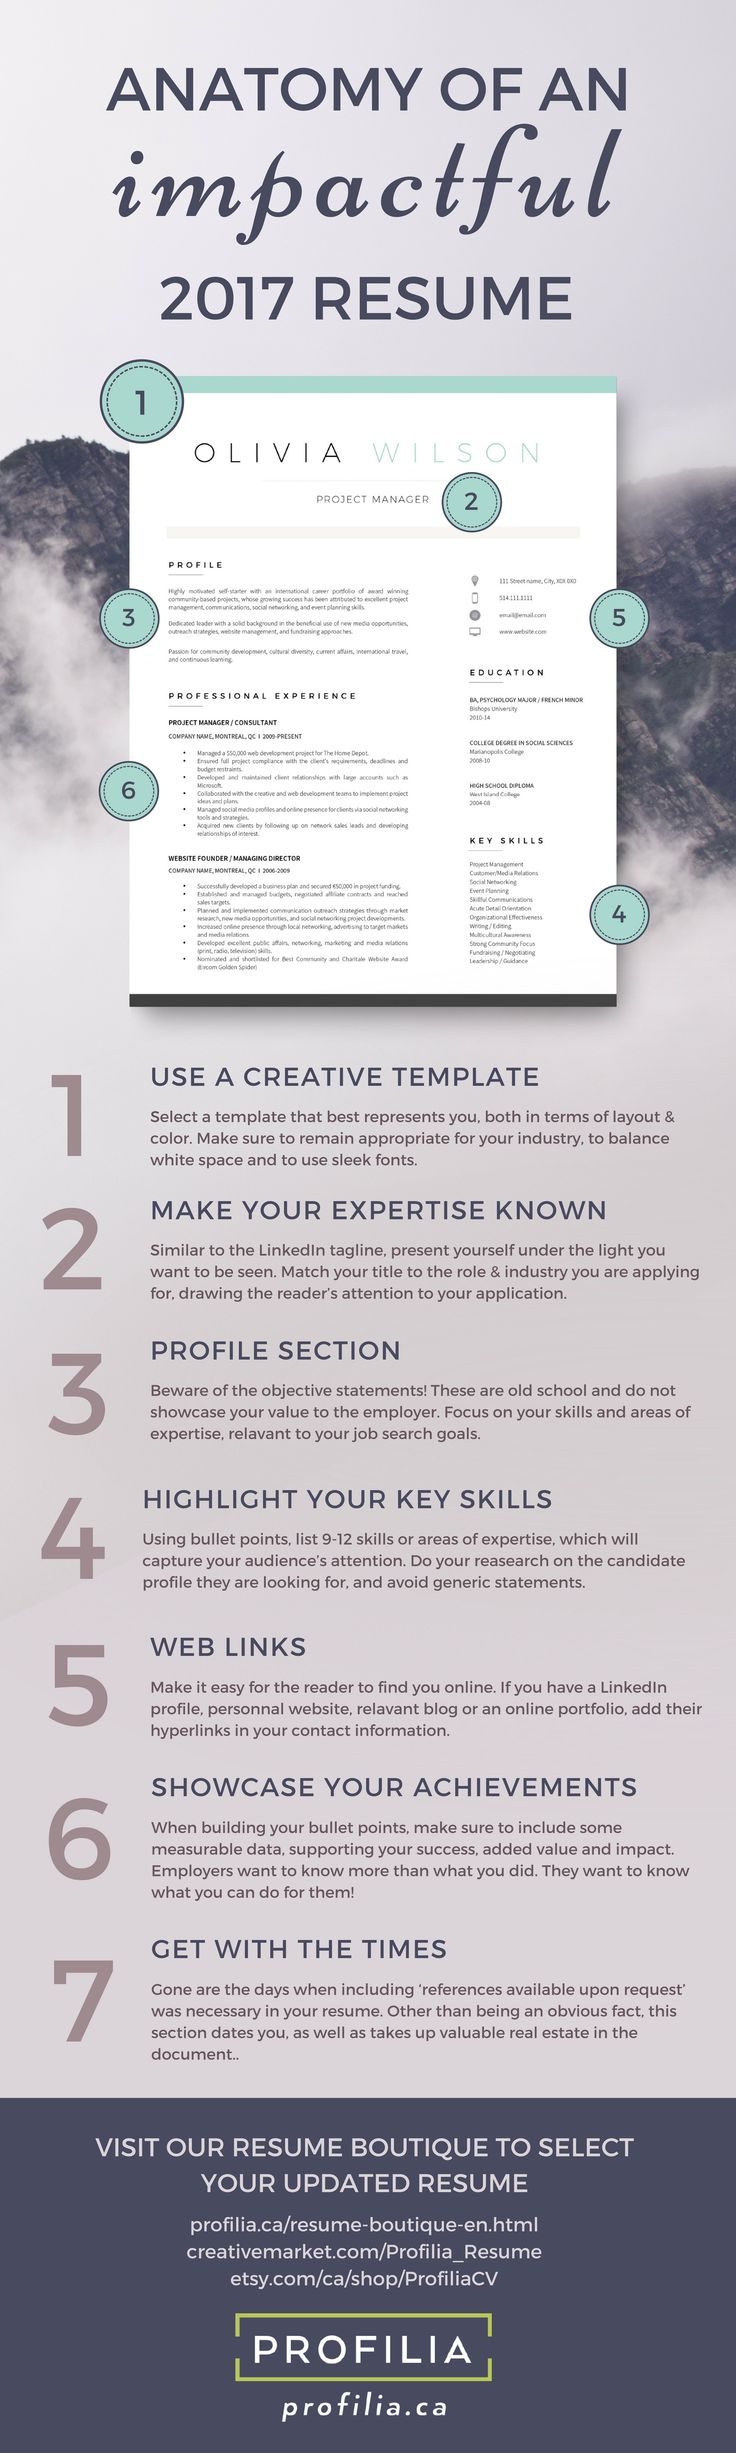 How To Make A Perfect Resume Step By Step Awesome 387 Best Resumes Images On Pinterest  Resume Career And Cover .